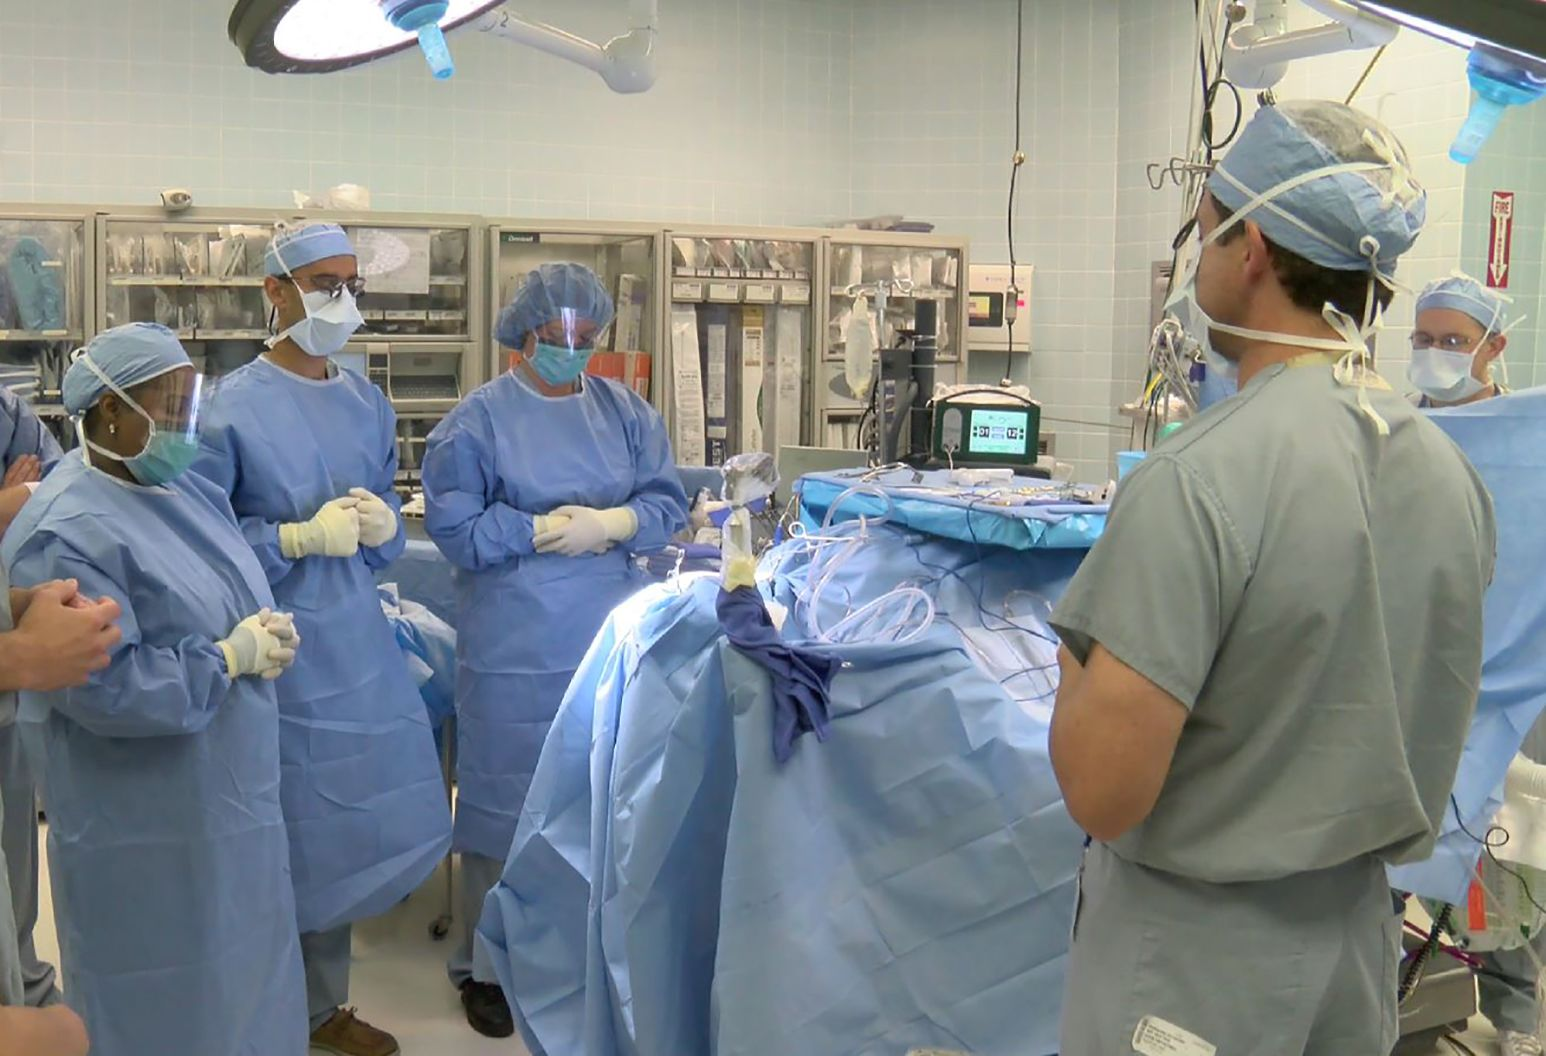 Surgeons and nurses in an operating room take a moment of silence before beginning a procedure